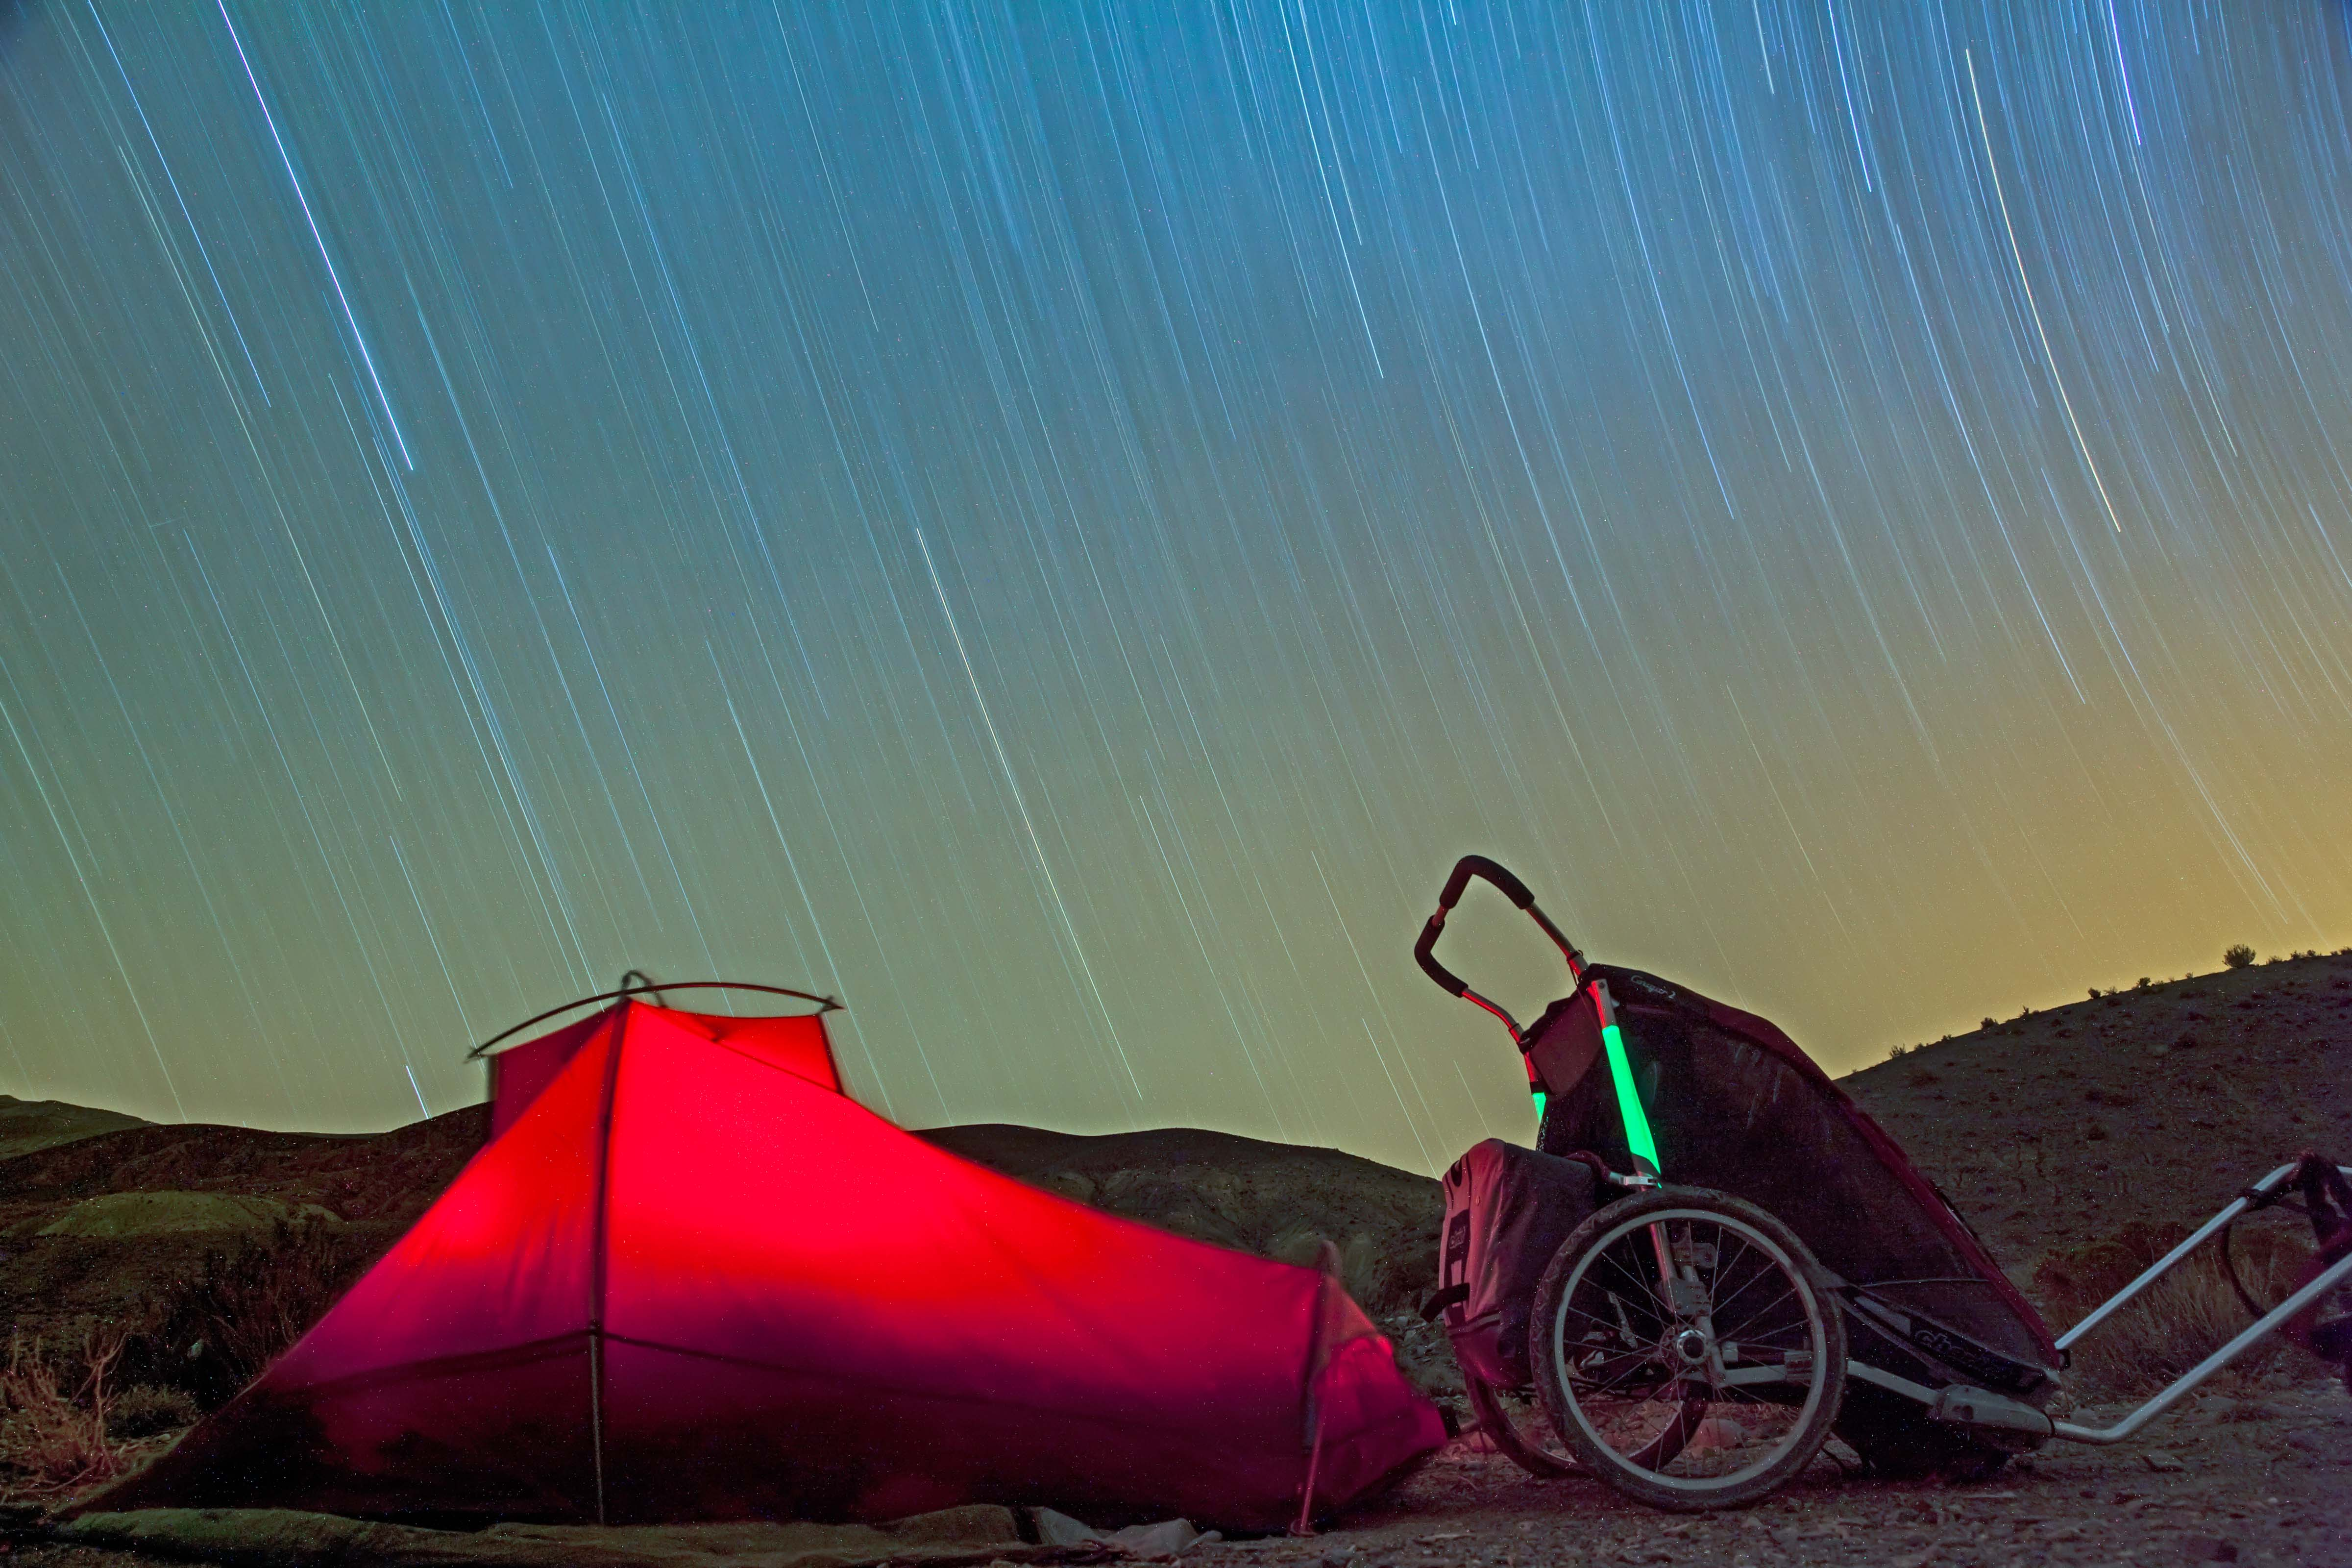 Argentina, Jujuy Province, In Tent with Chariot under Stars, 2010, IMG 6231r5